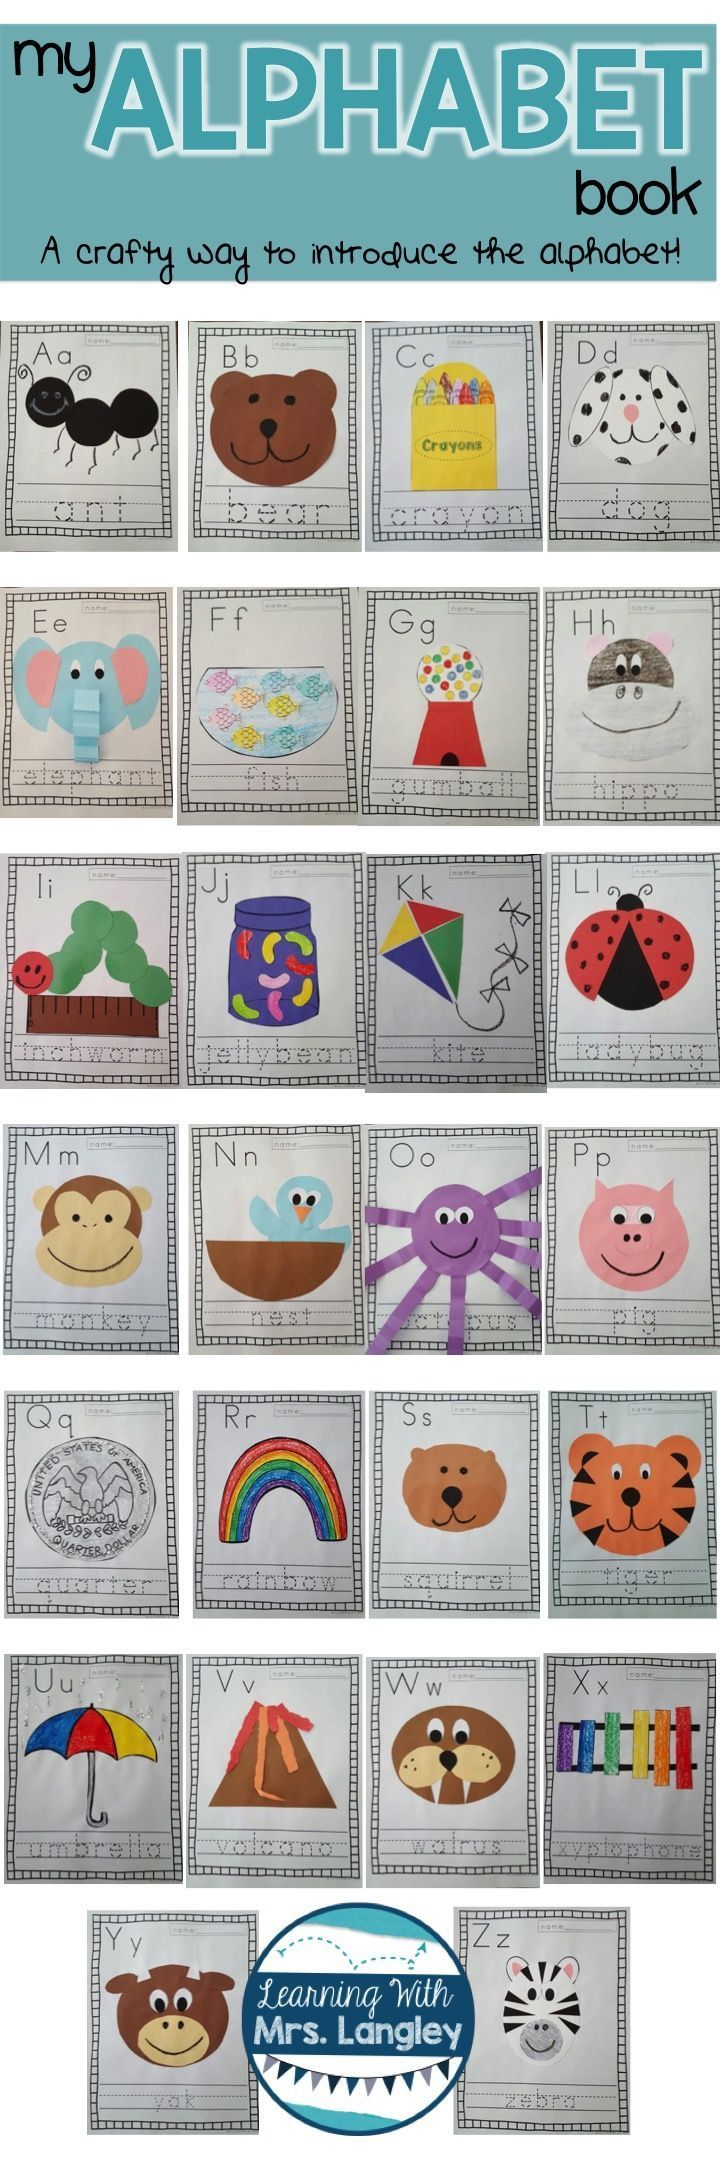 This alphabet book is a great way to introduce the alphabet during the first…